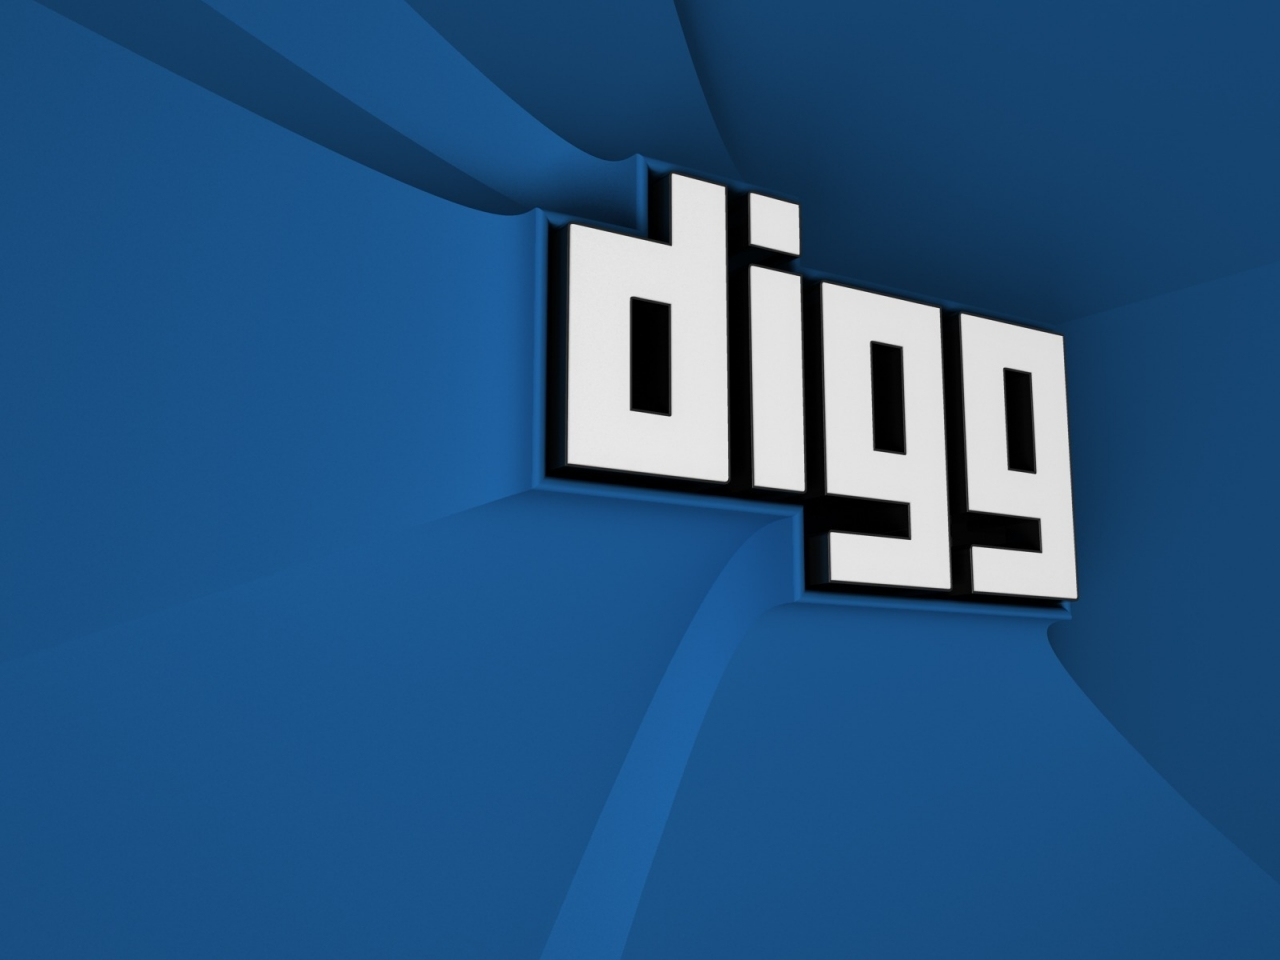 Digg for 1280 x 960 resolution